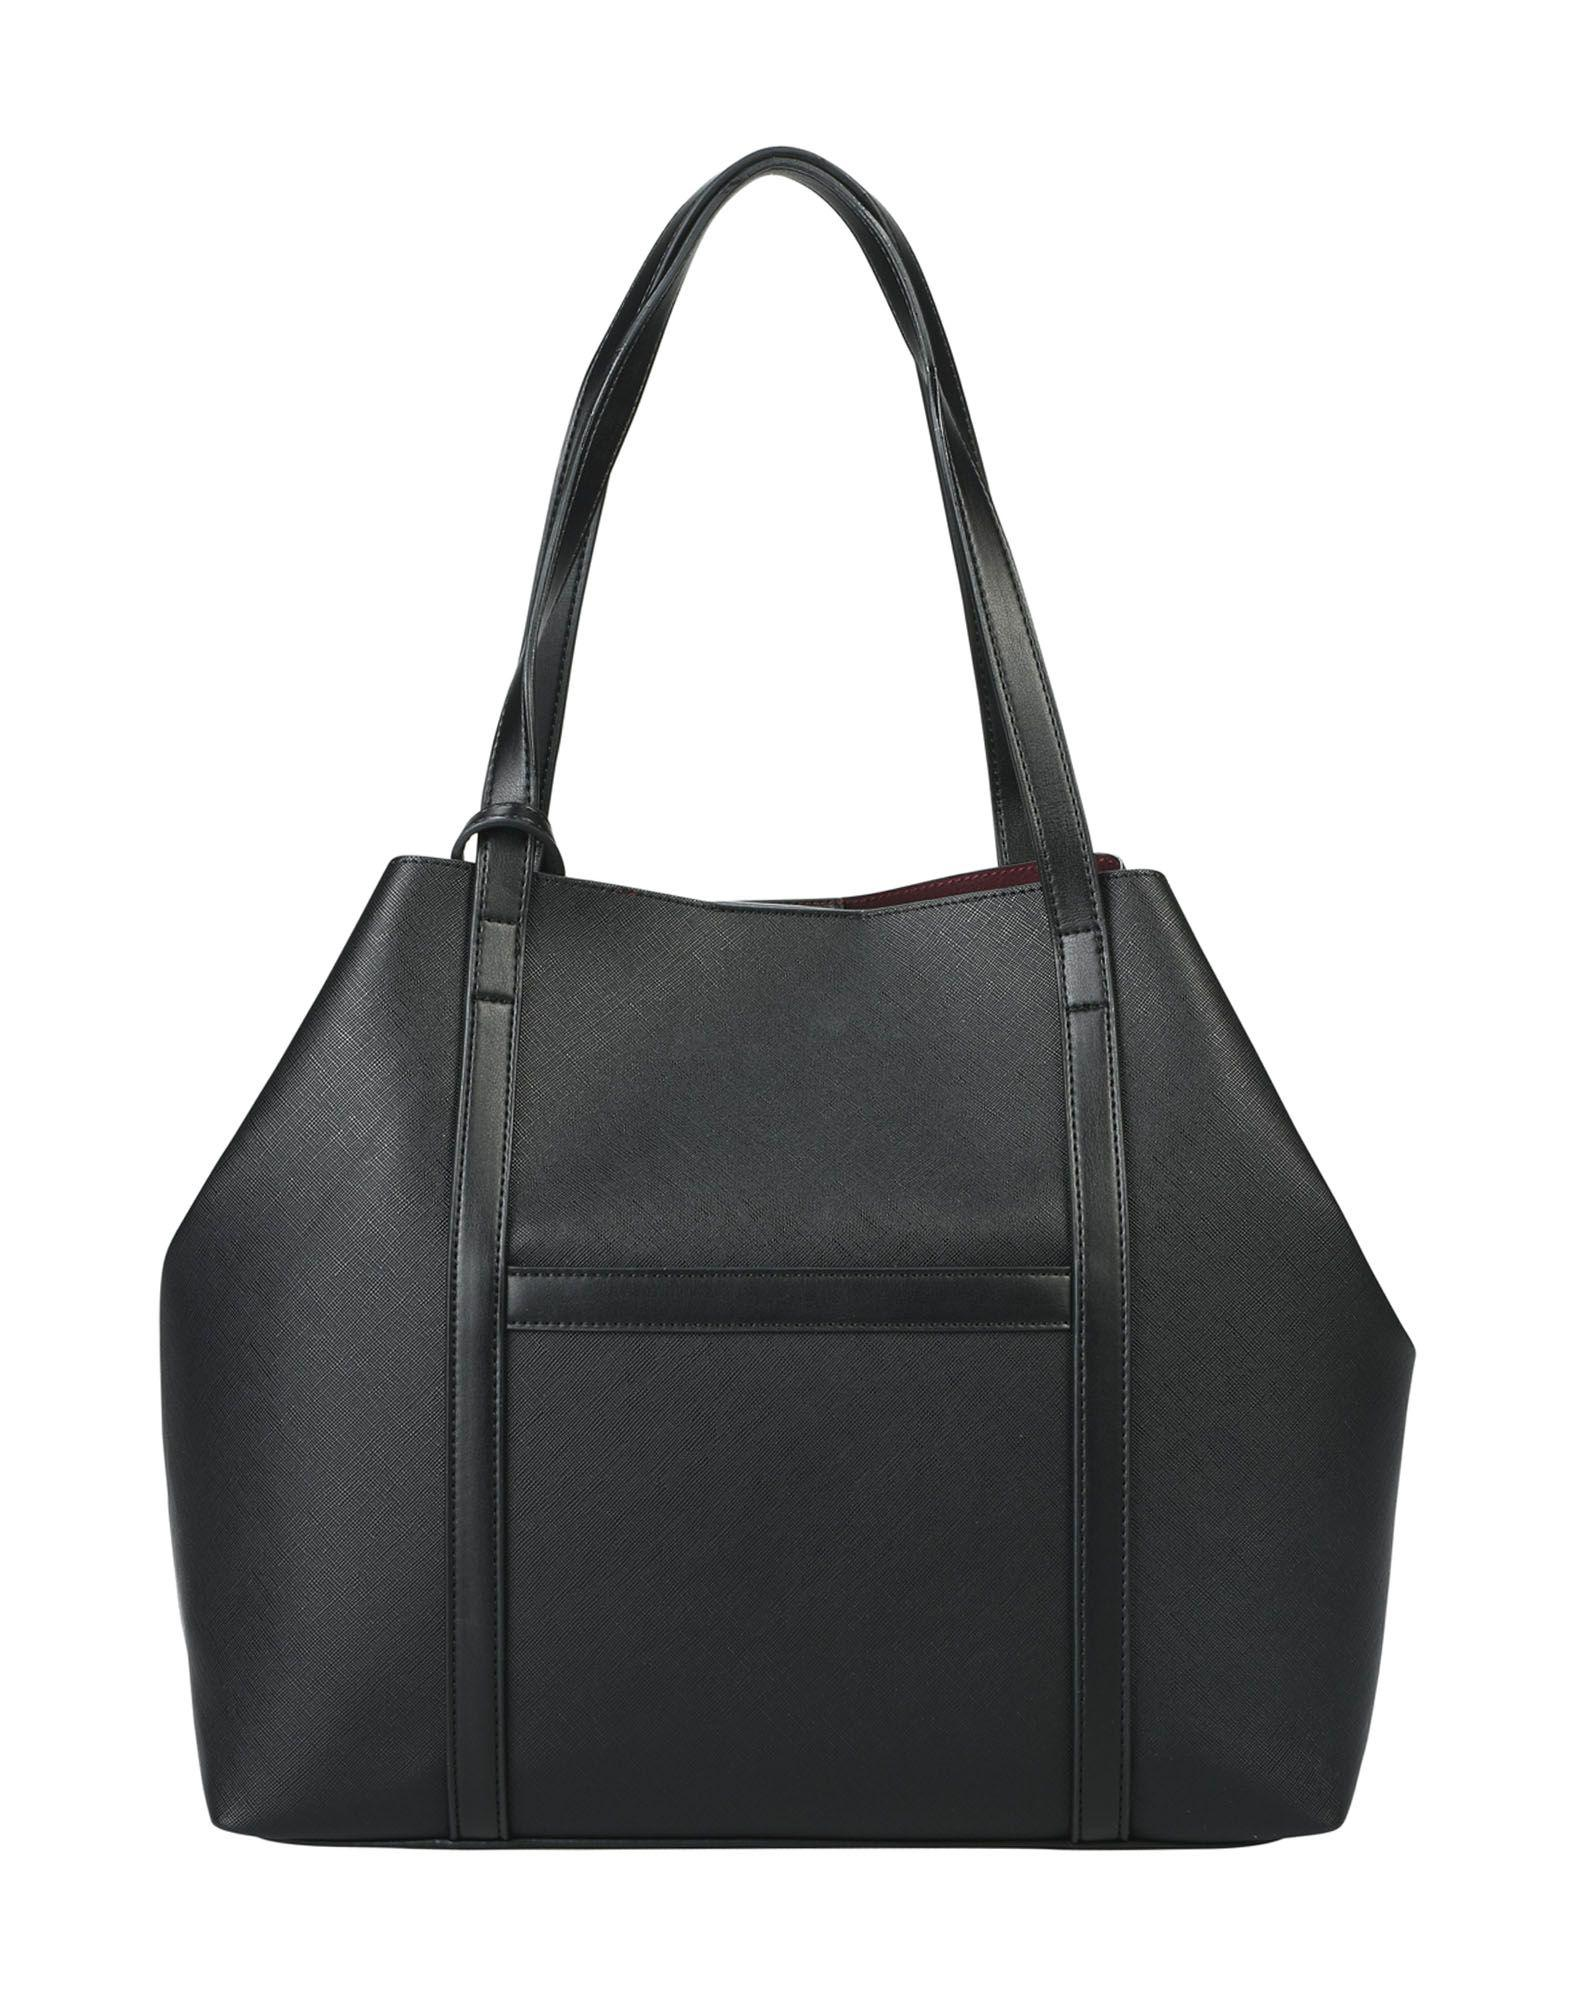 French Connection Women S Black Handbags